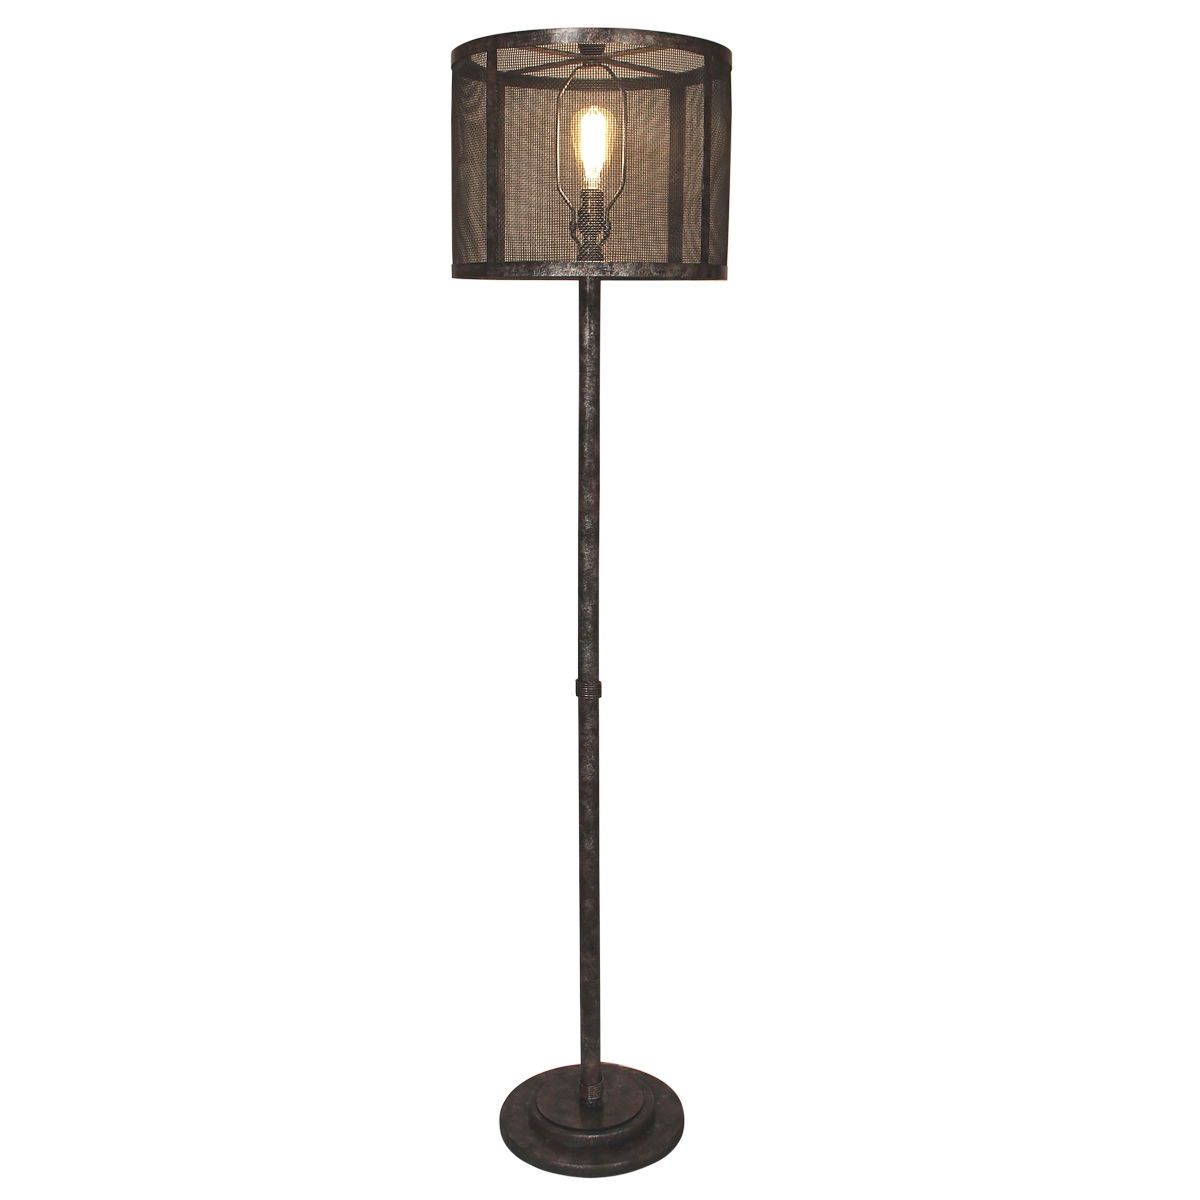 Antiqued Wire Wrapped Floor Lamp with Metal Mesh Shade